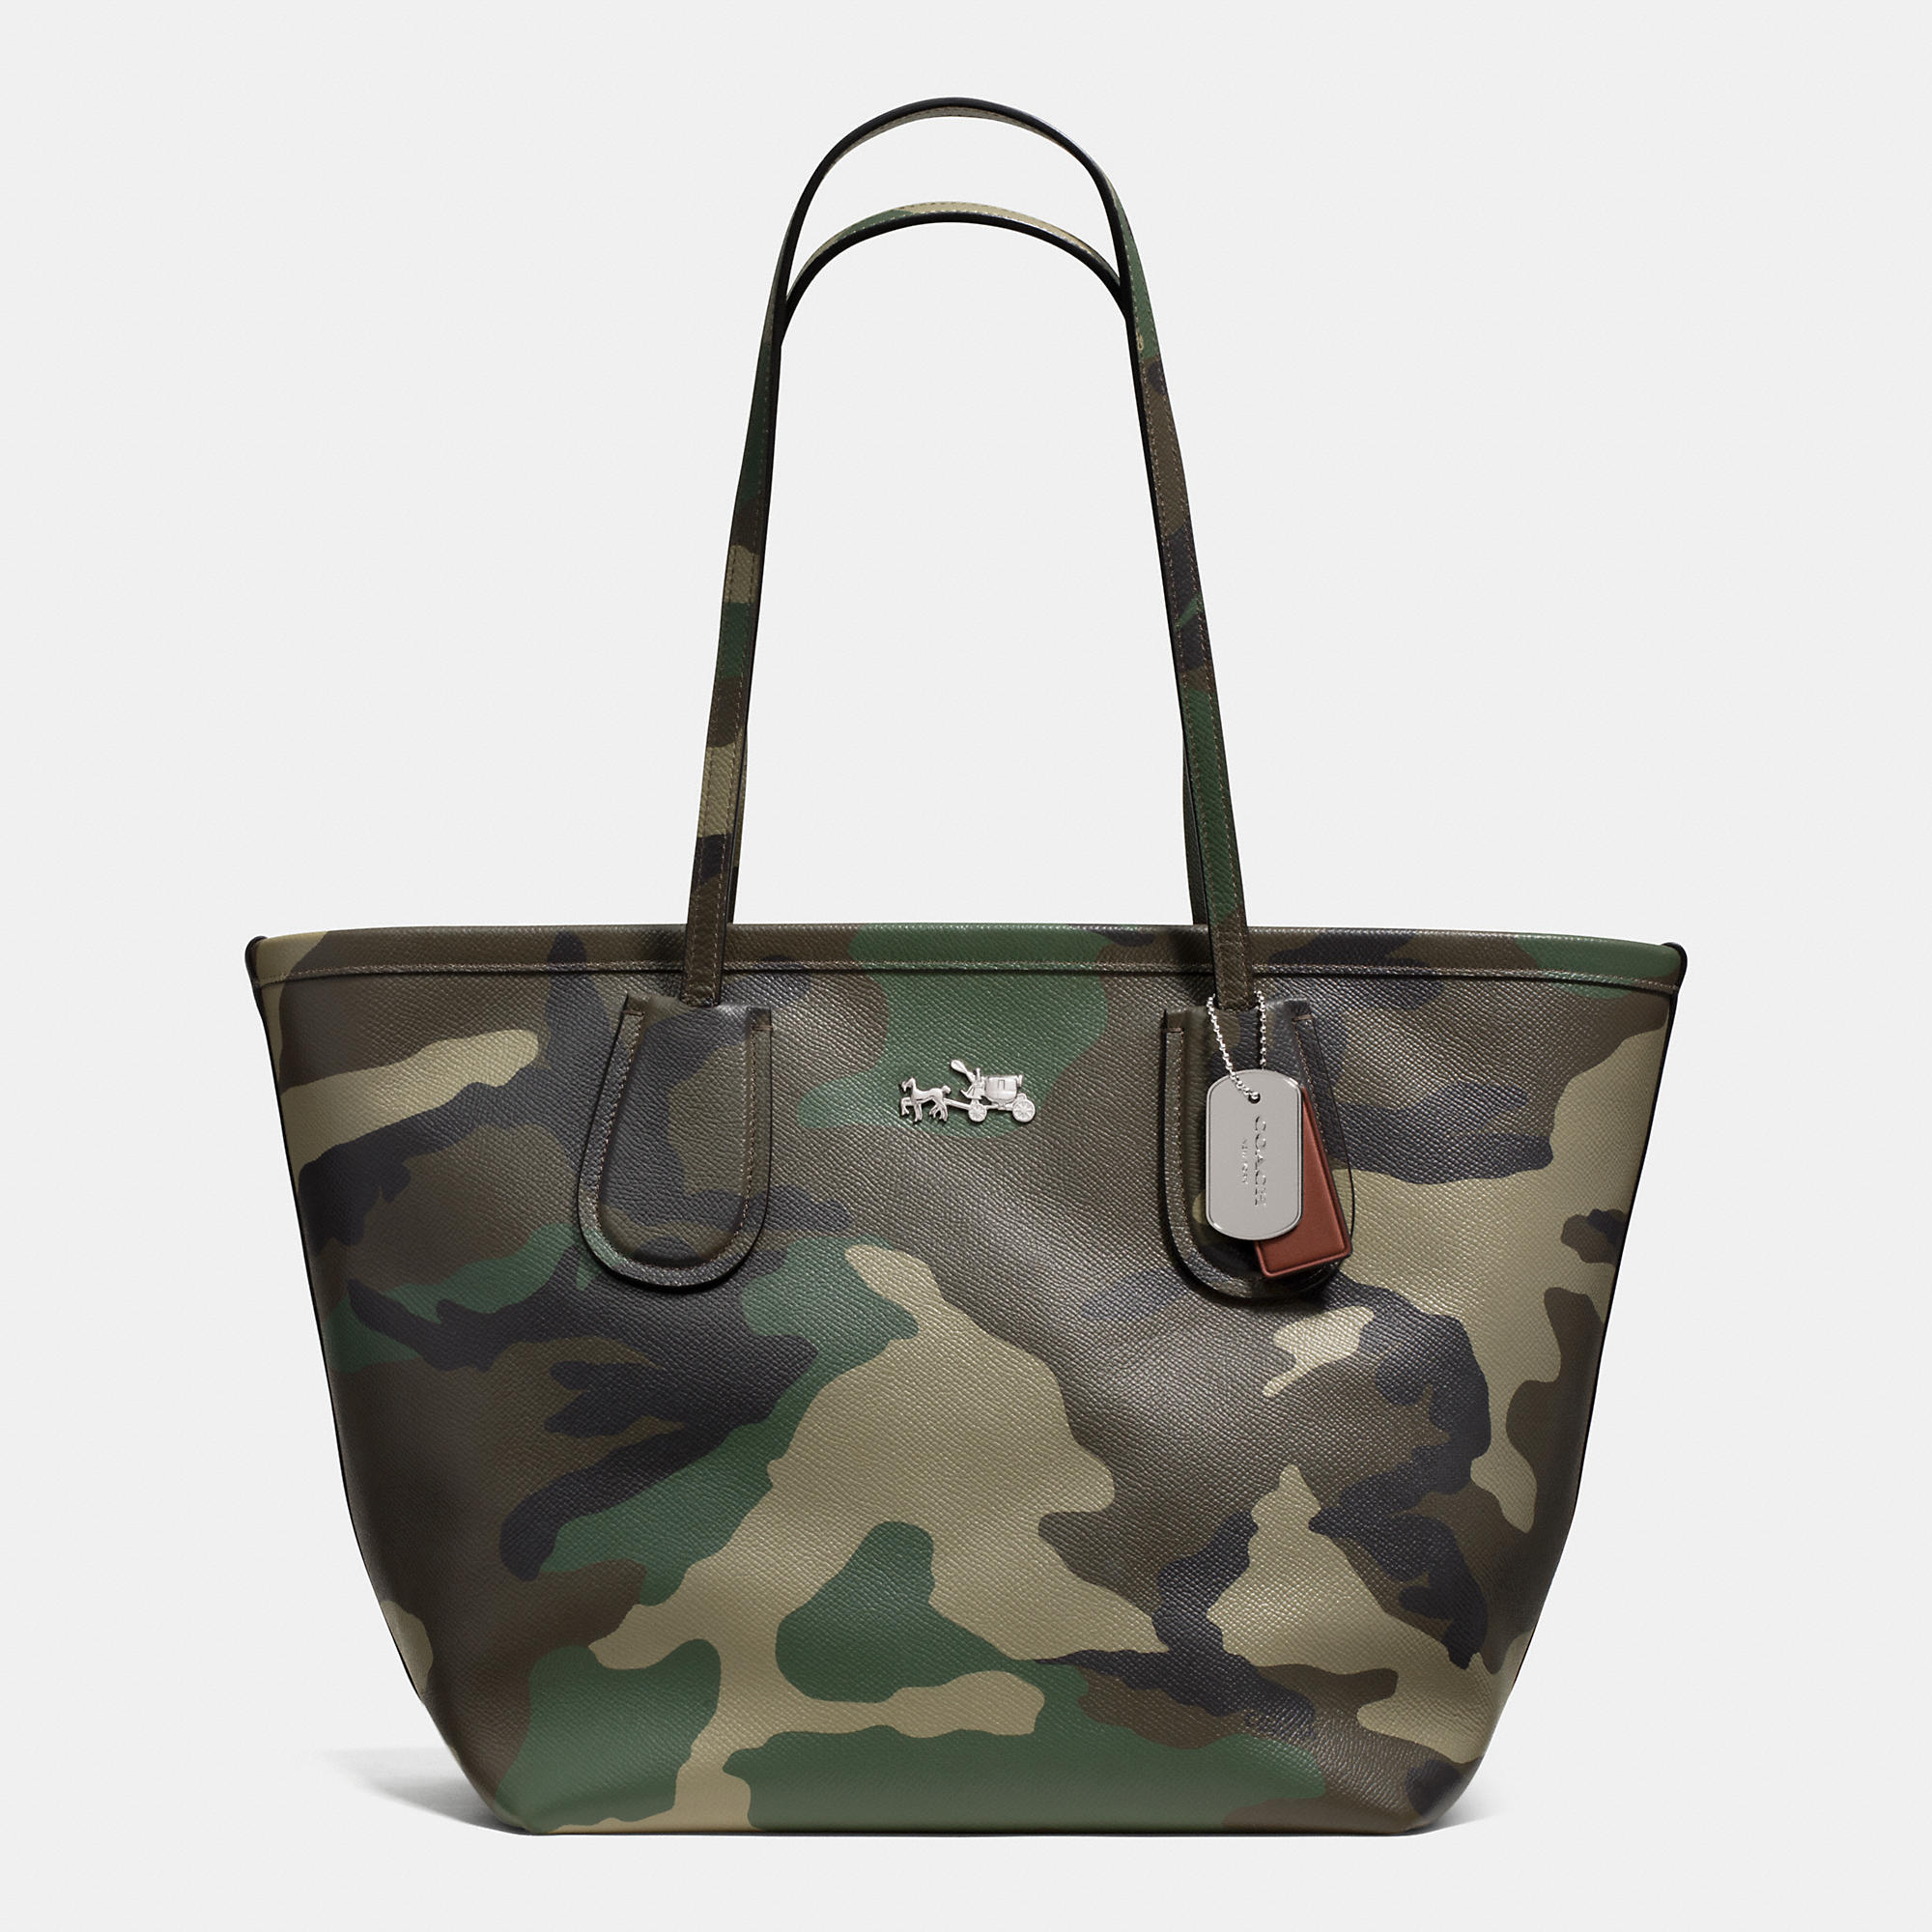 SHOP BAGS & BACKPACKS NOW! In Demand Designer Bags. Featuring Styles from Kate Spade, Coach, and more + FREE SHIPPING. Fast Delivery & 24/7 Customer Service.